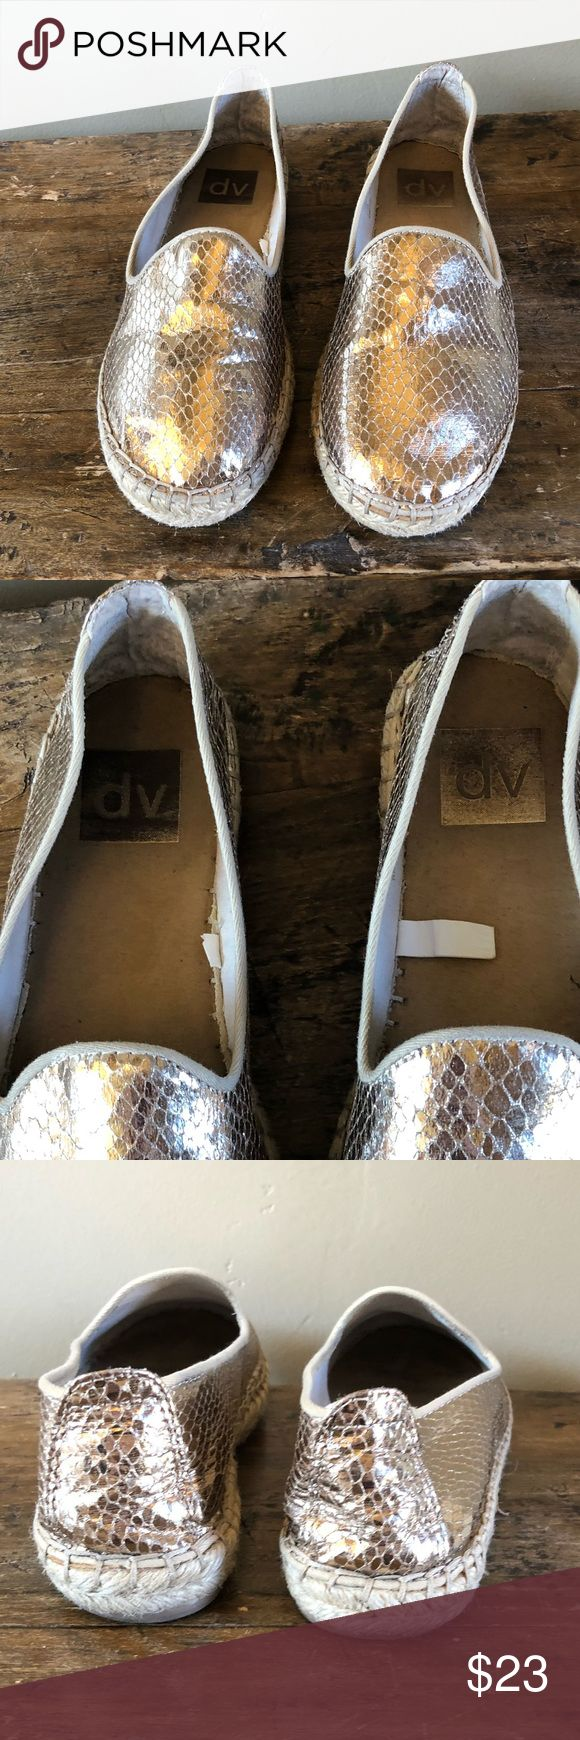 DV by Dolce Vita Gold Metallic Espadrilles Size 6 Good condition.  Really cute and comfy! DV by Dolce Vita Shoes Espadrilles